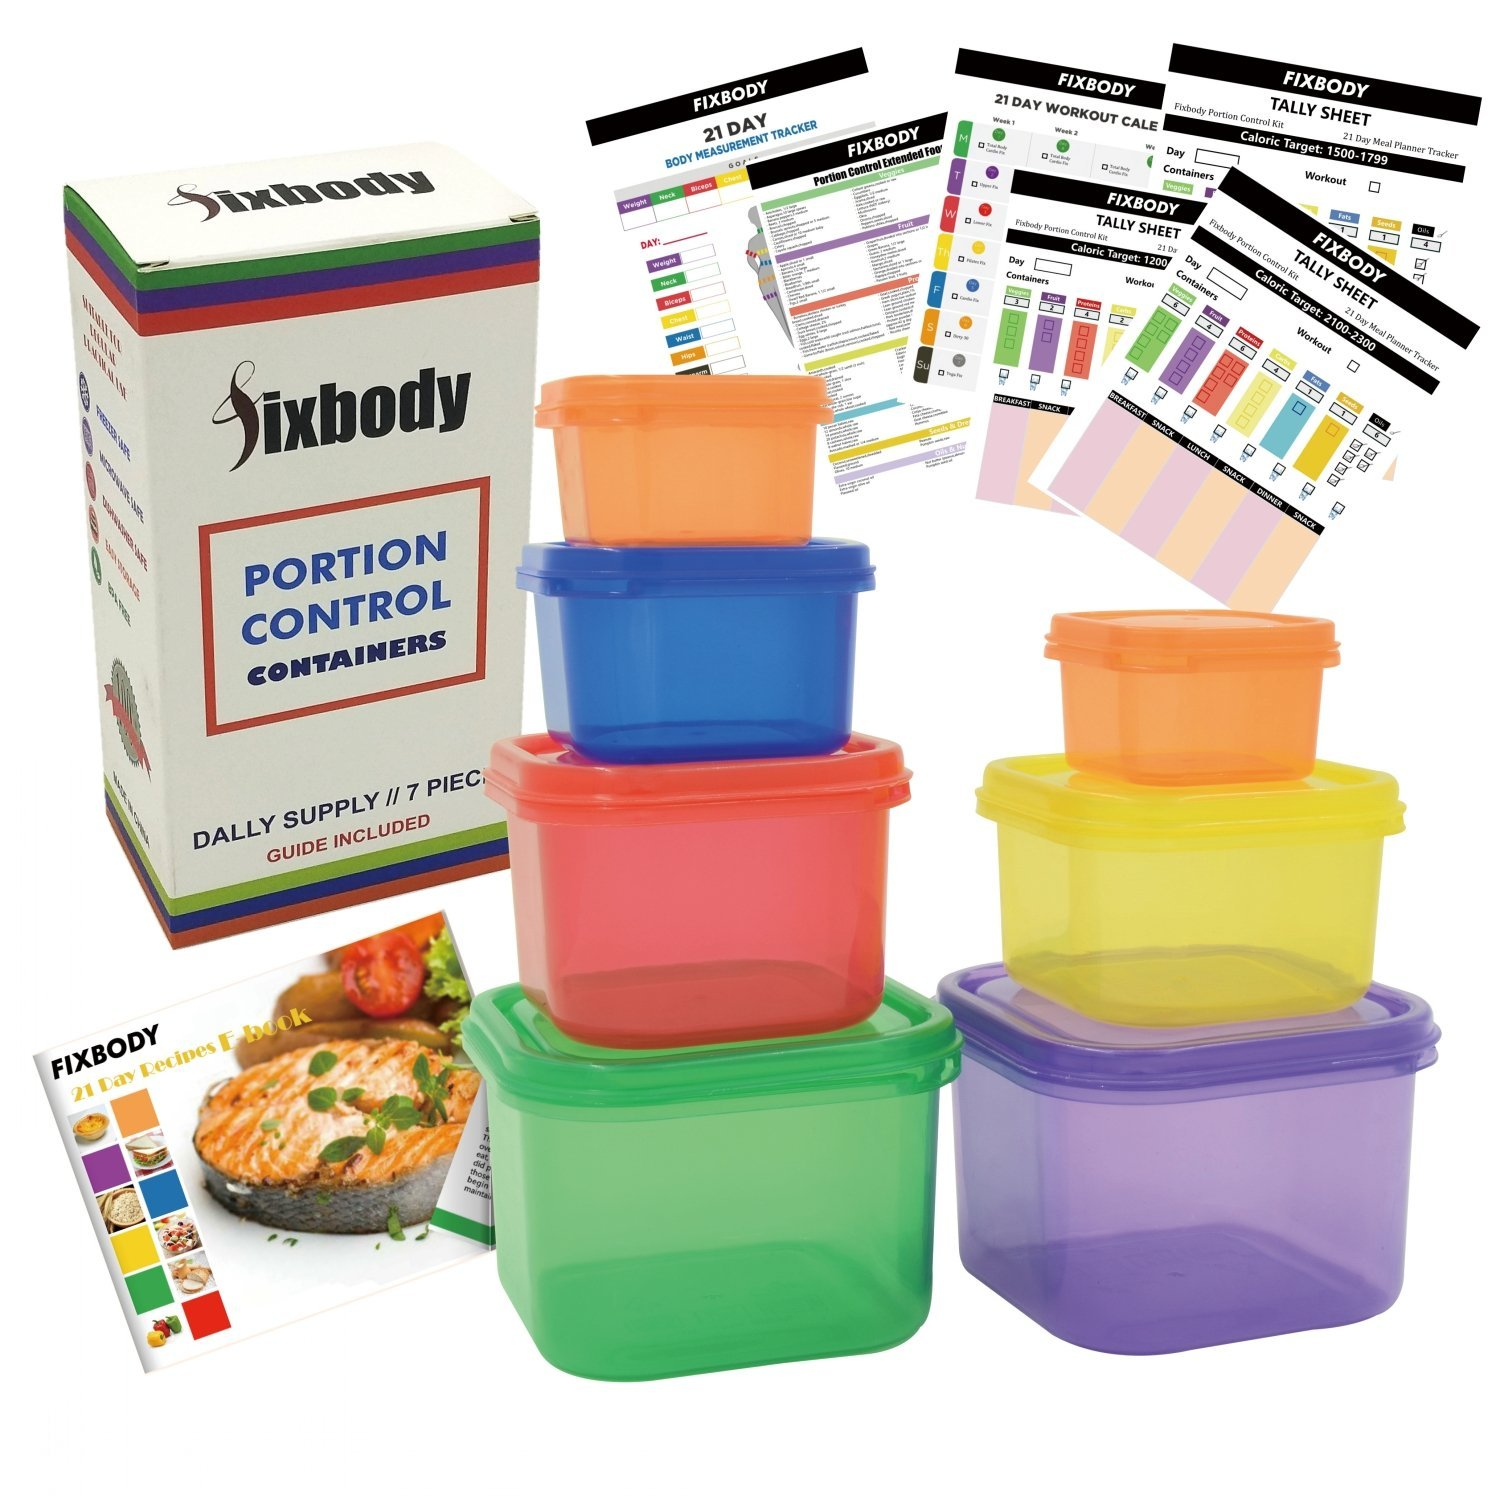 Amazon Deal – 7 Piece 21 Day Portion Control Weight Loss System Only $5.50 (Reg $19.99)